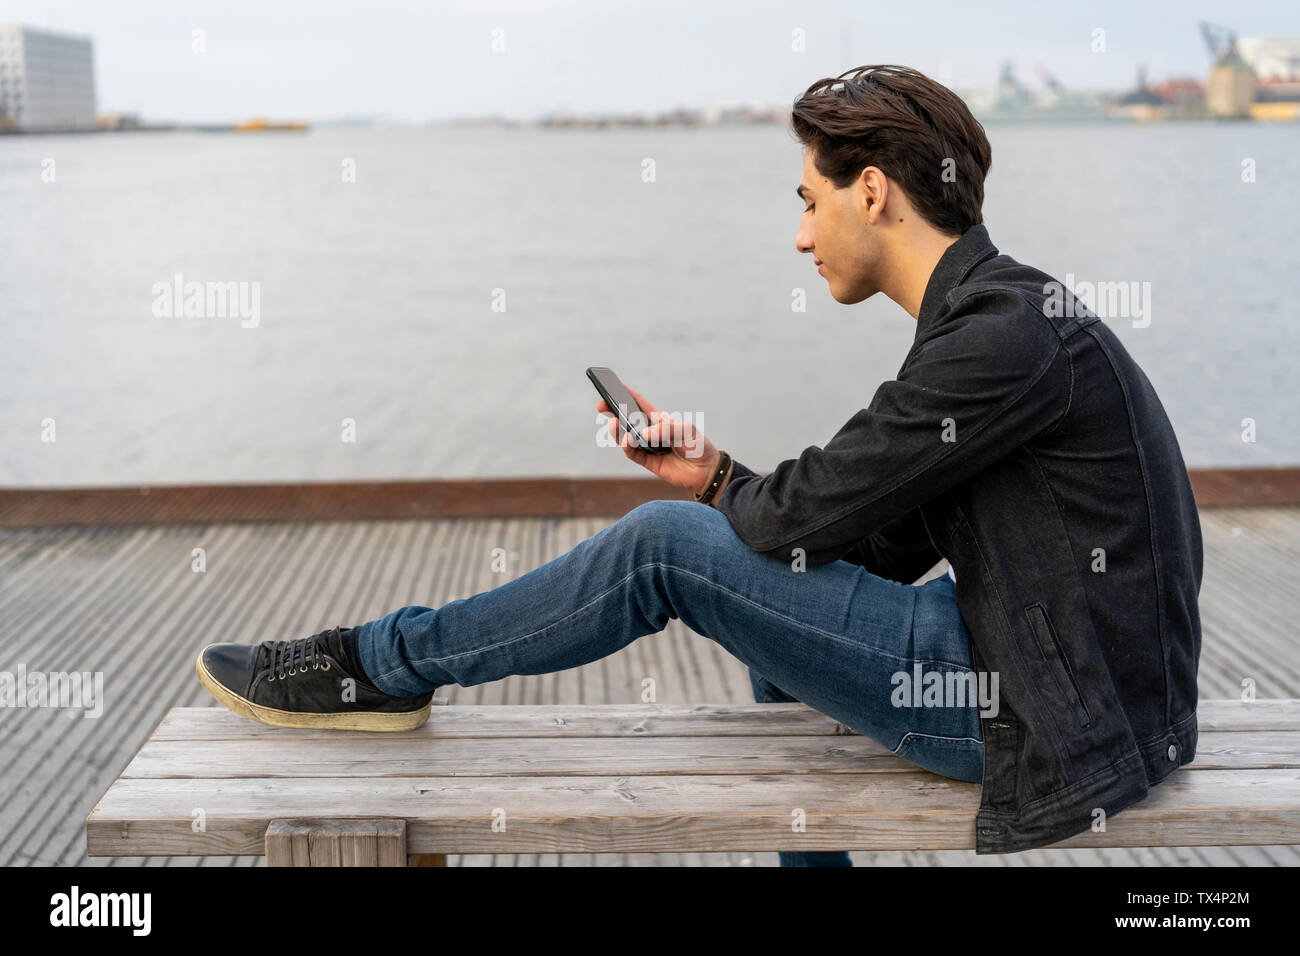 Denmark, Copenhagen, young man sitting on a bench at the waterfront using cell phone - Stock Image